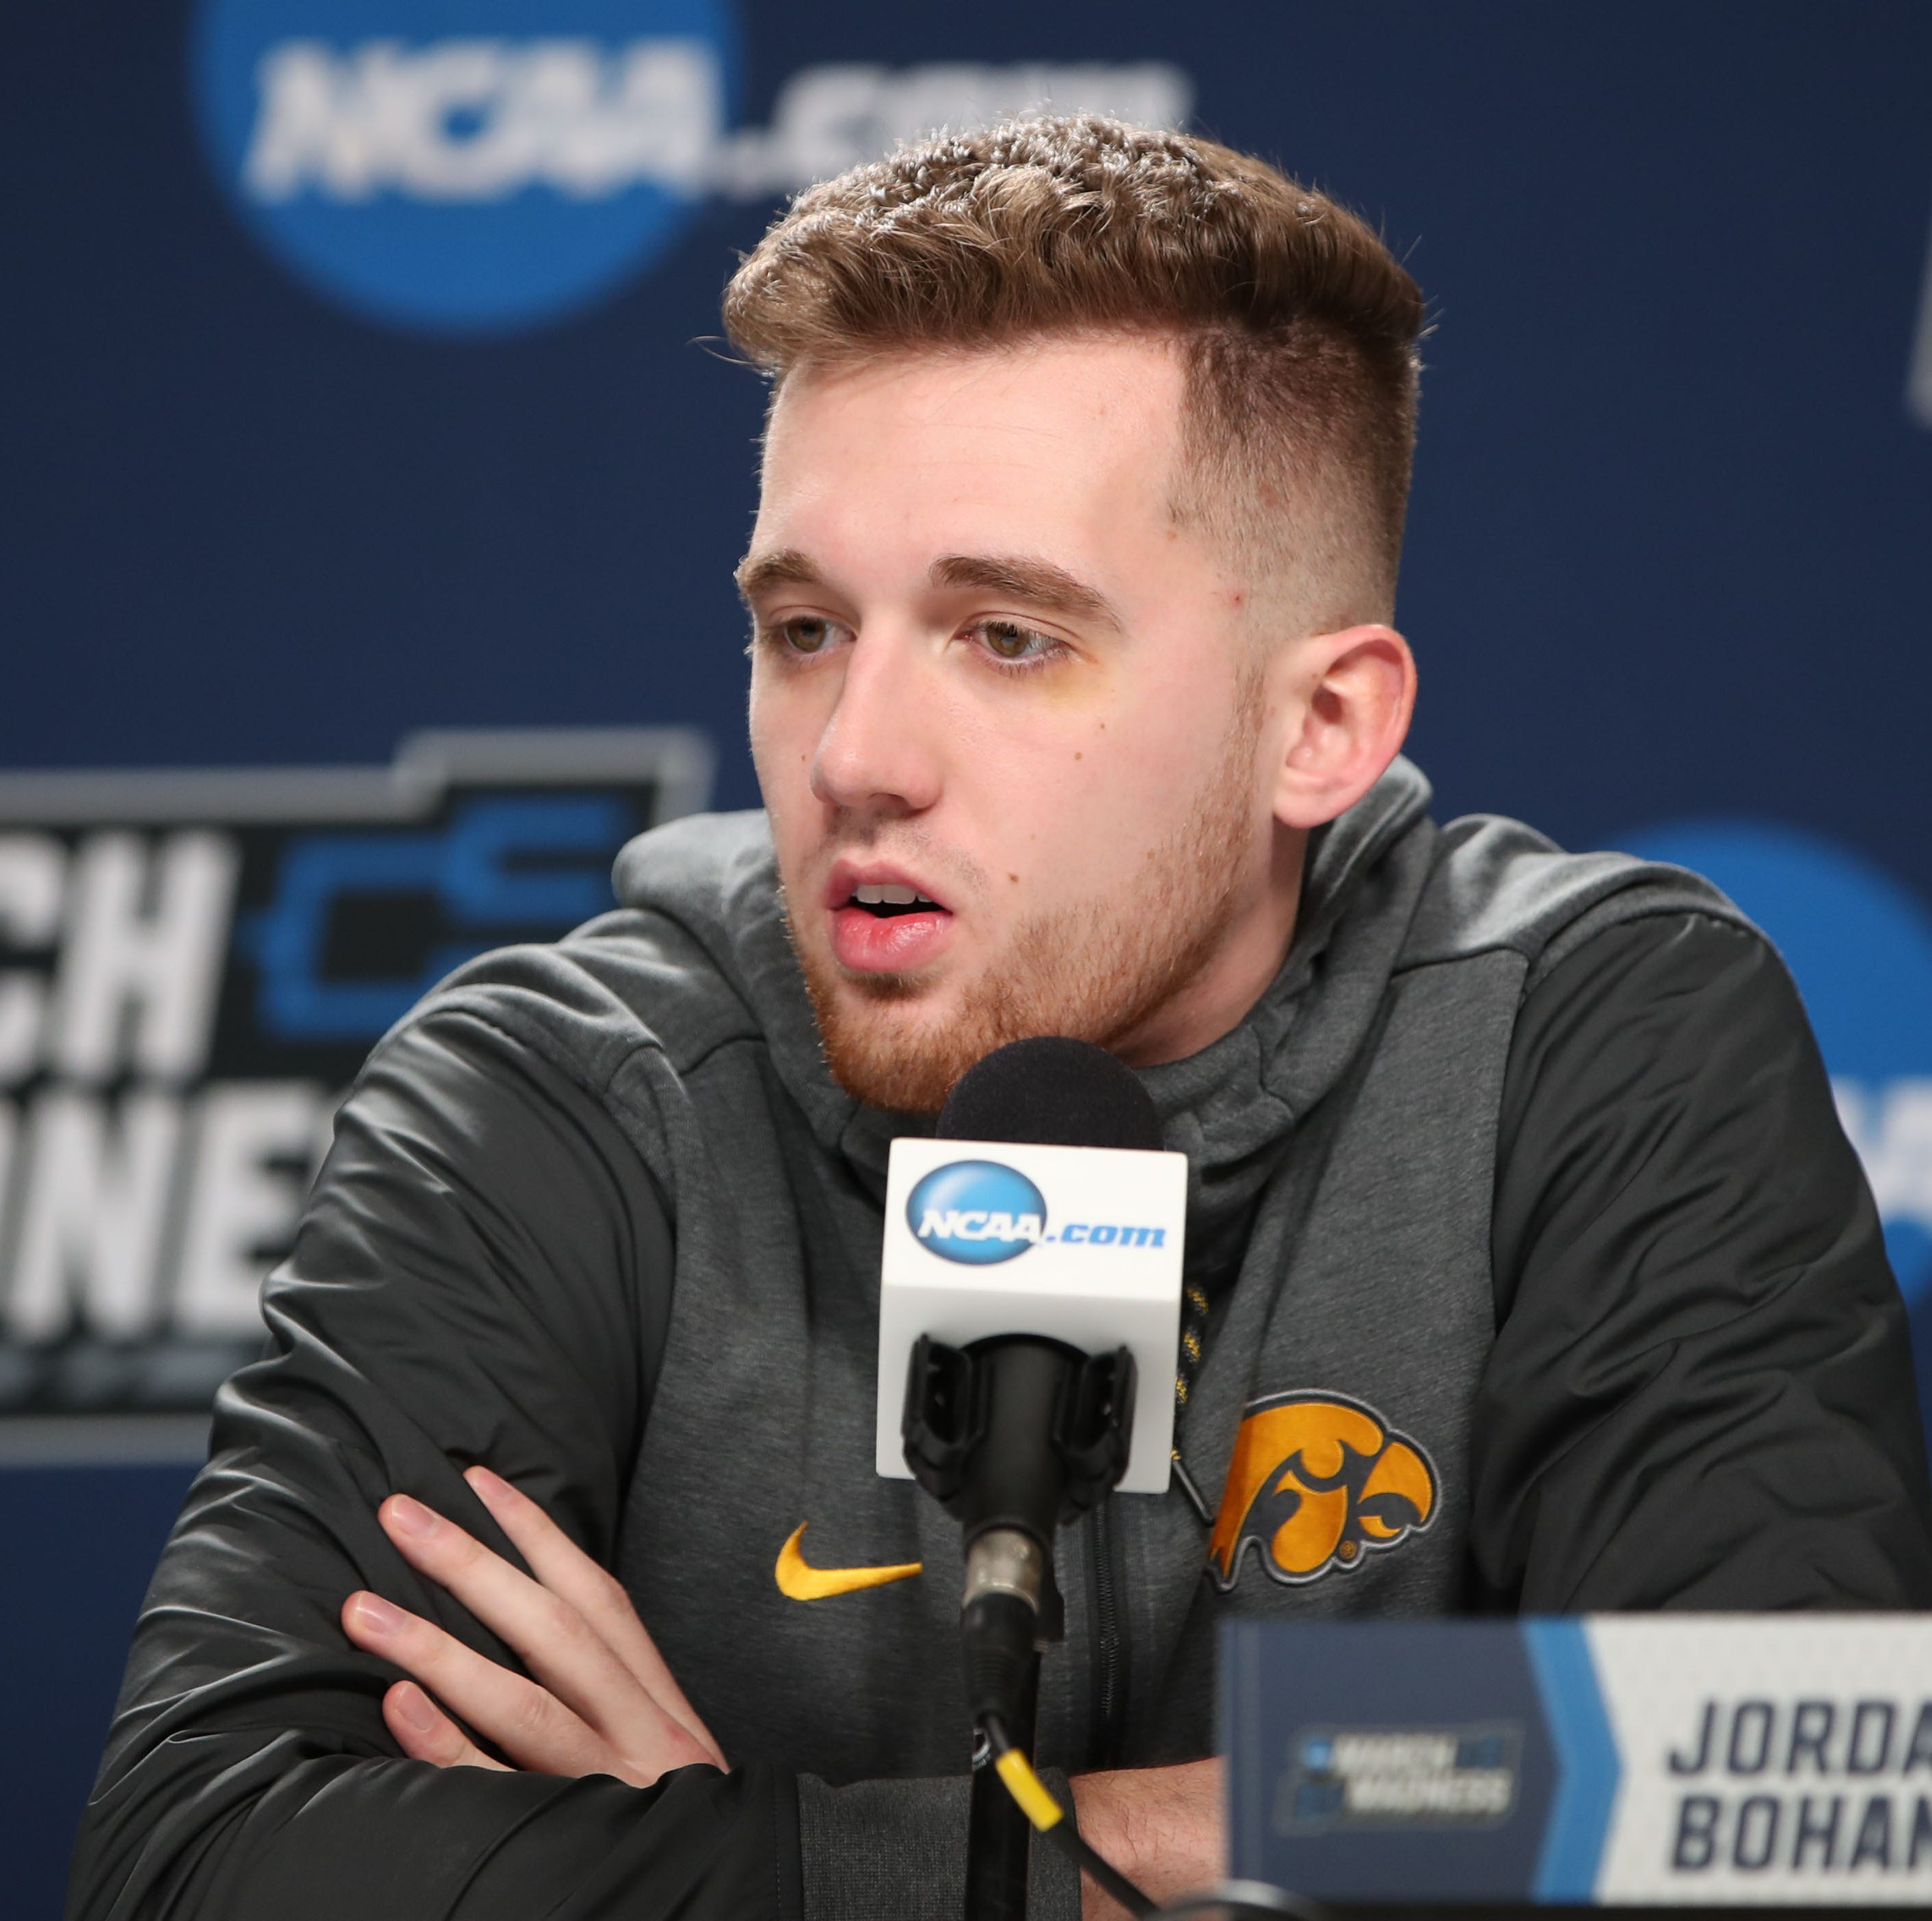 Jordan Bohannon hopes to lead a 3-point barrage as Iowa faces Cincinnati